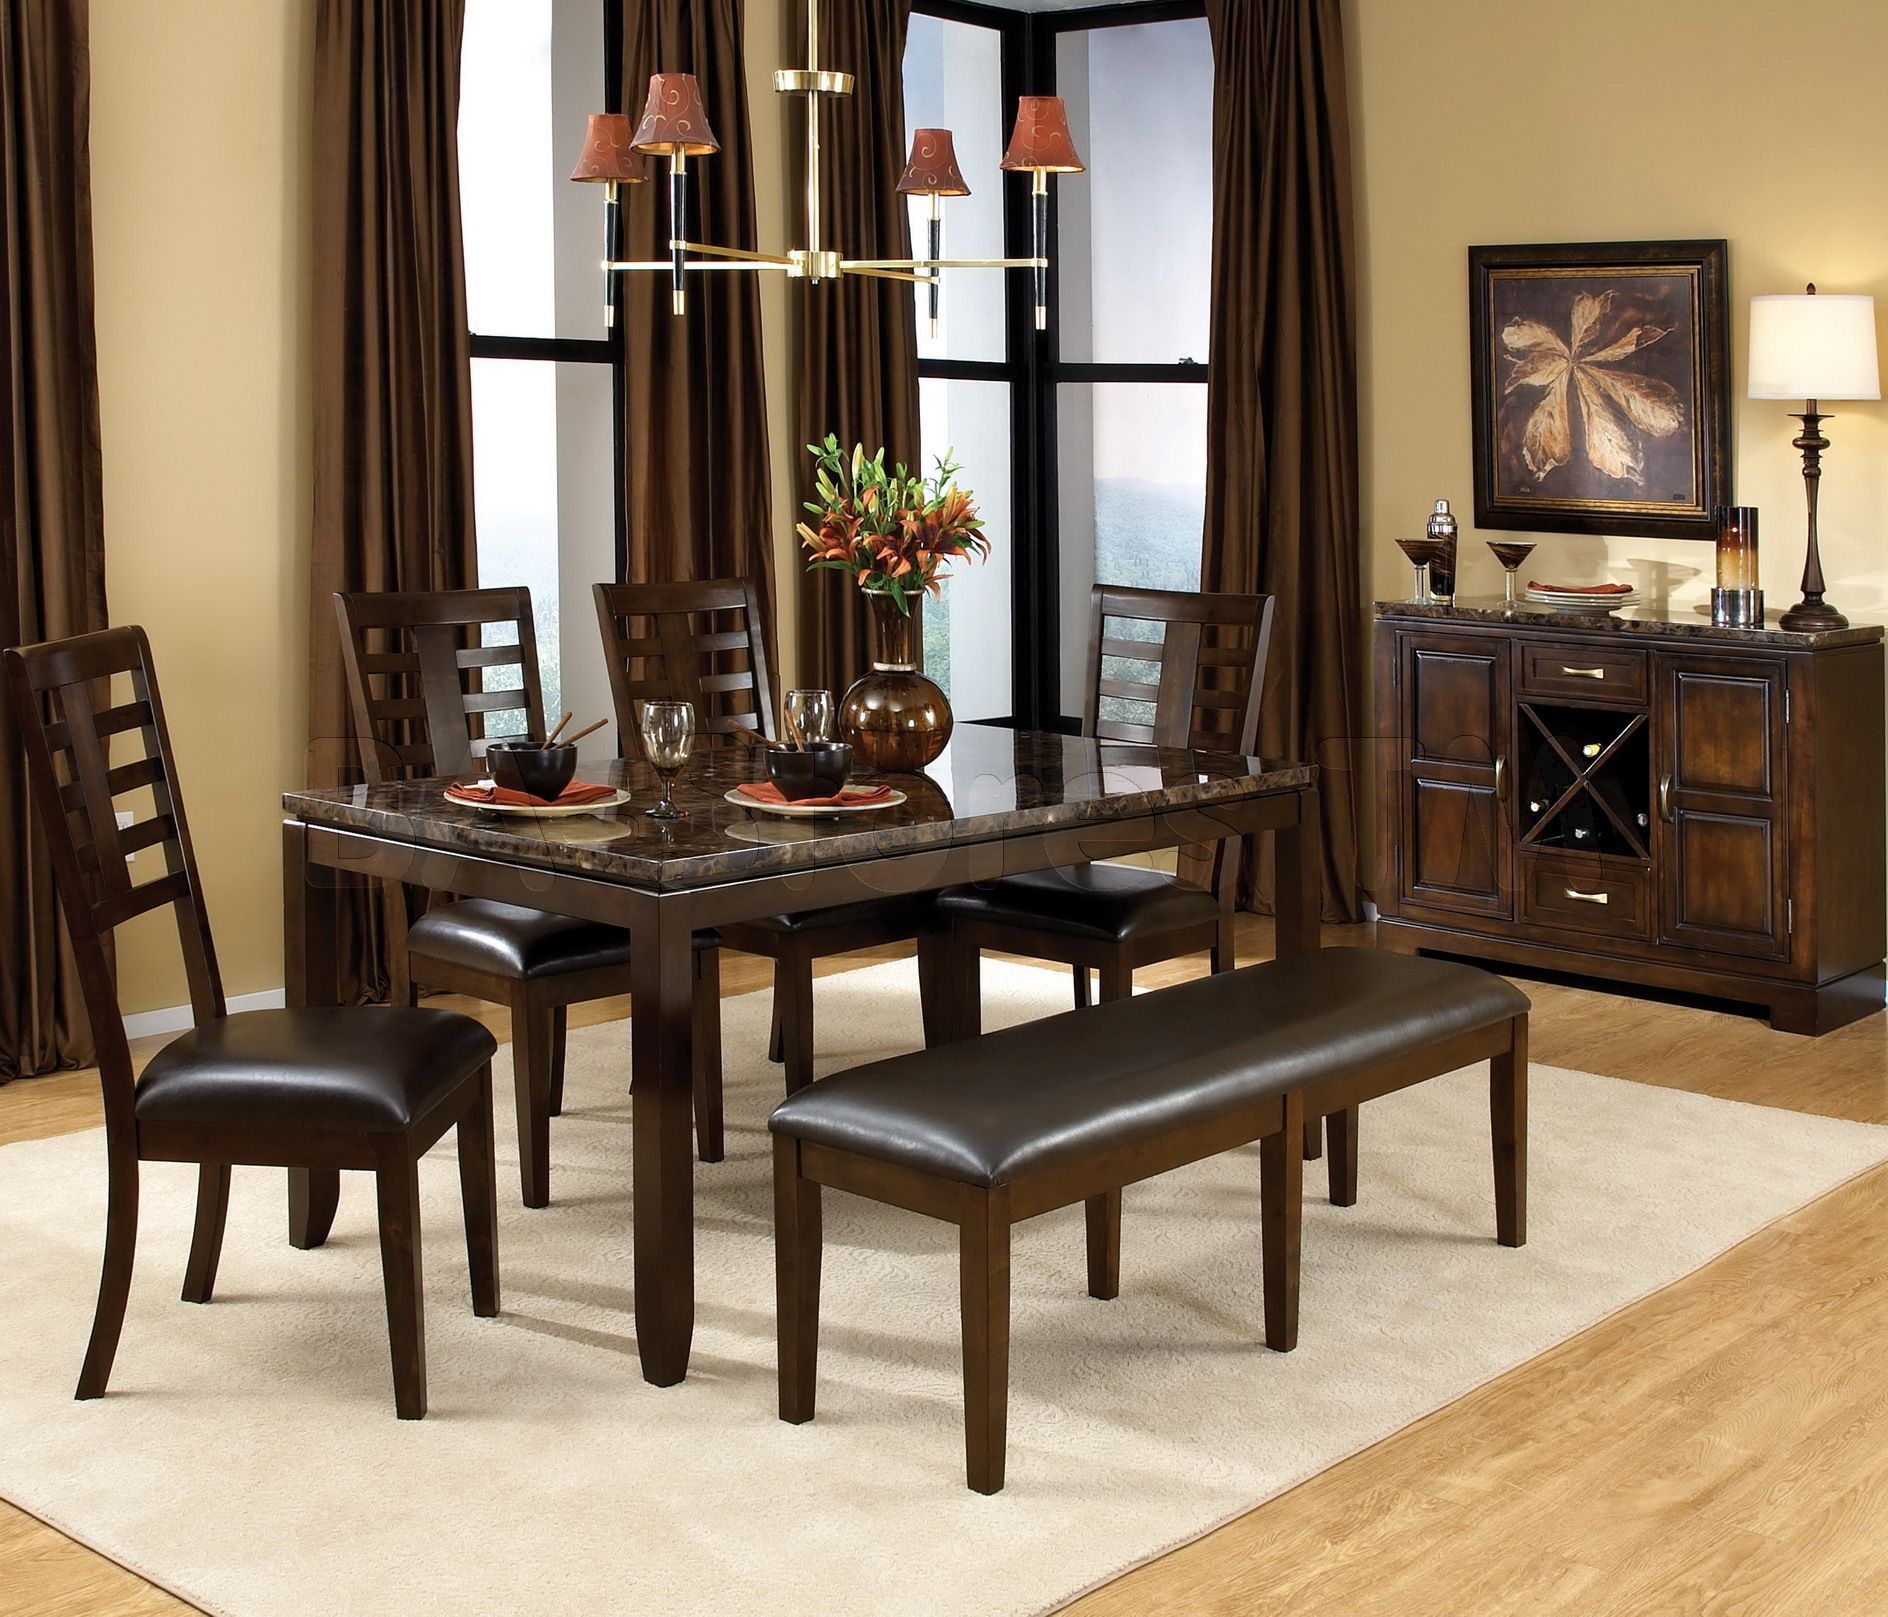 Standard Furniture 16841 Bella Dining Table   Home Furniture Showroom